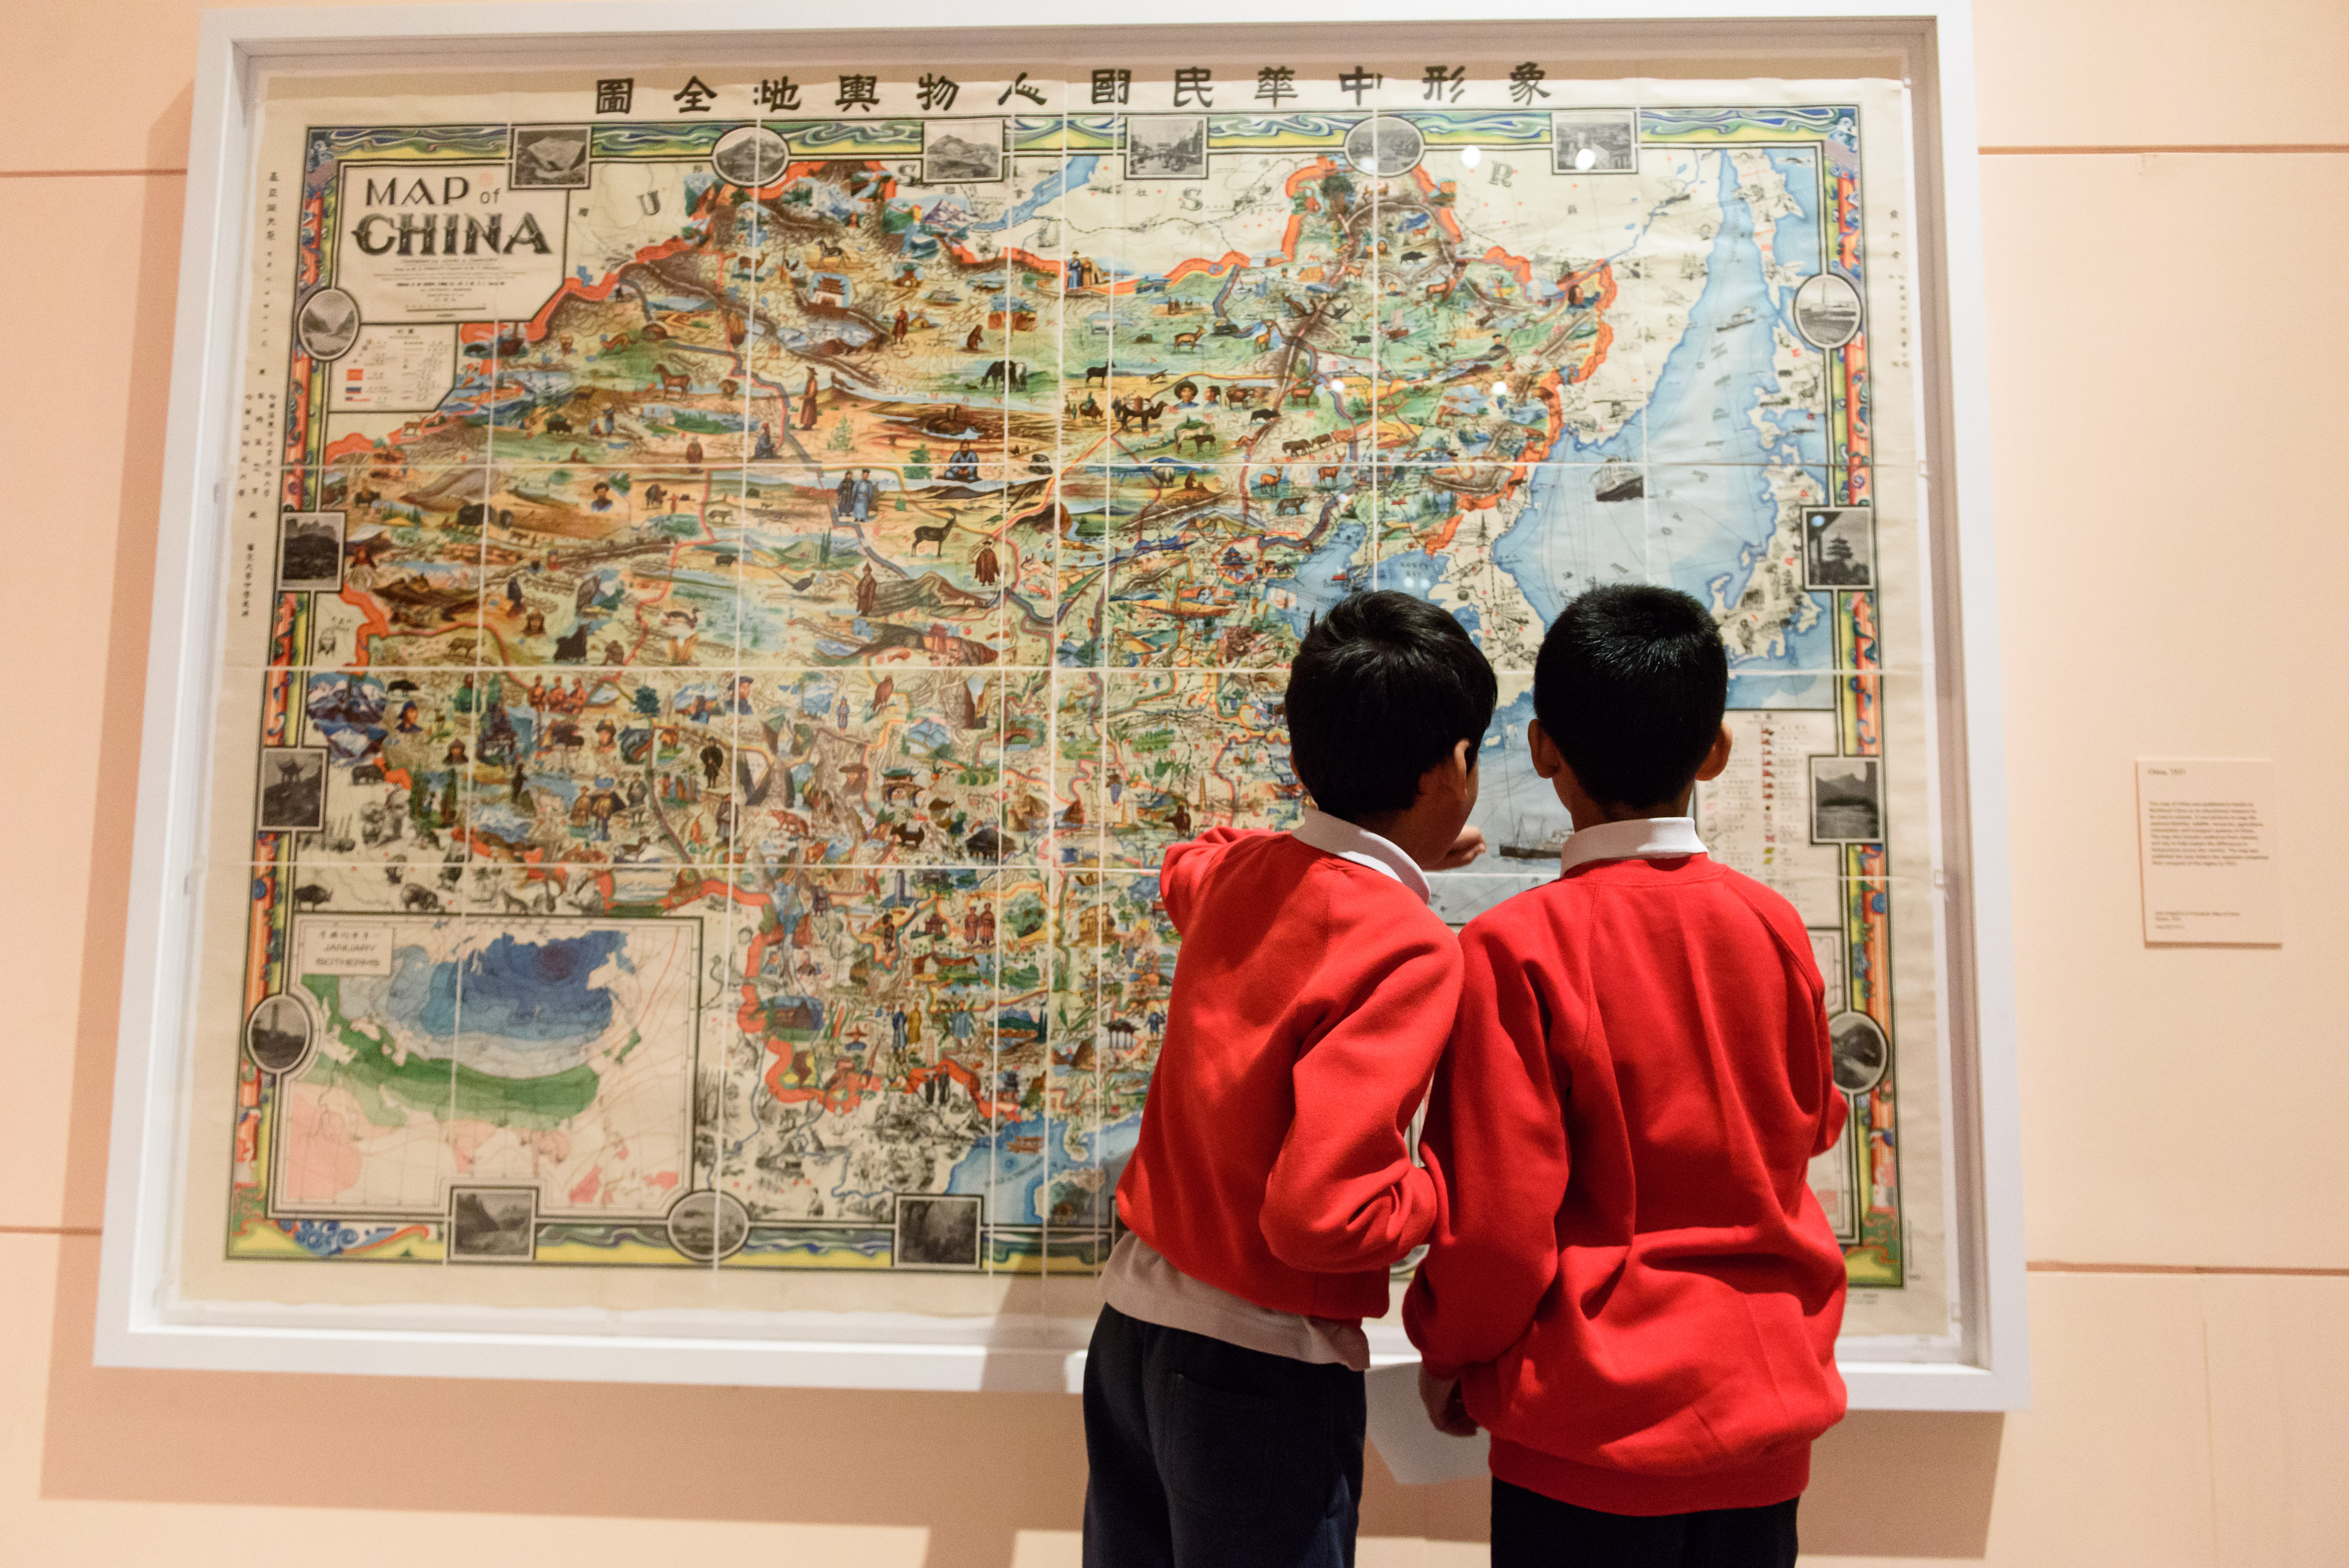 Two school pupils view a map in a gallery